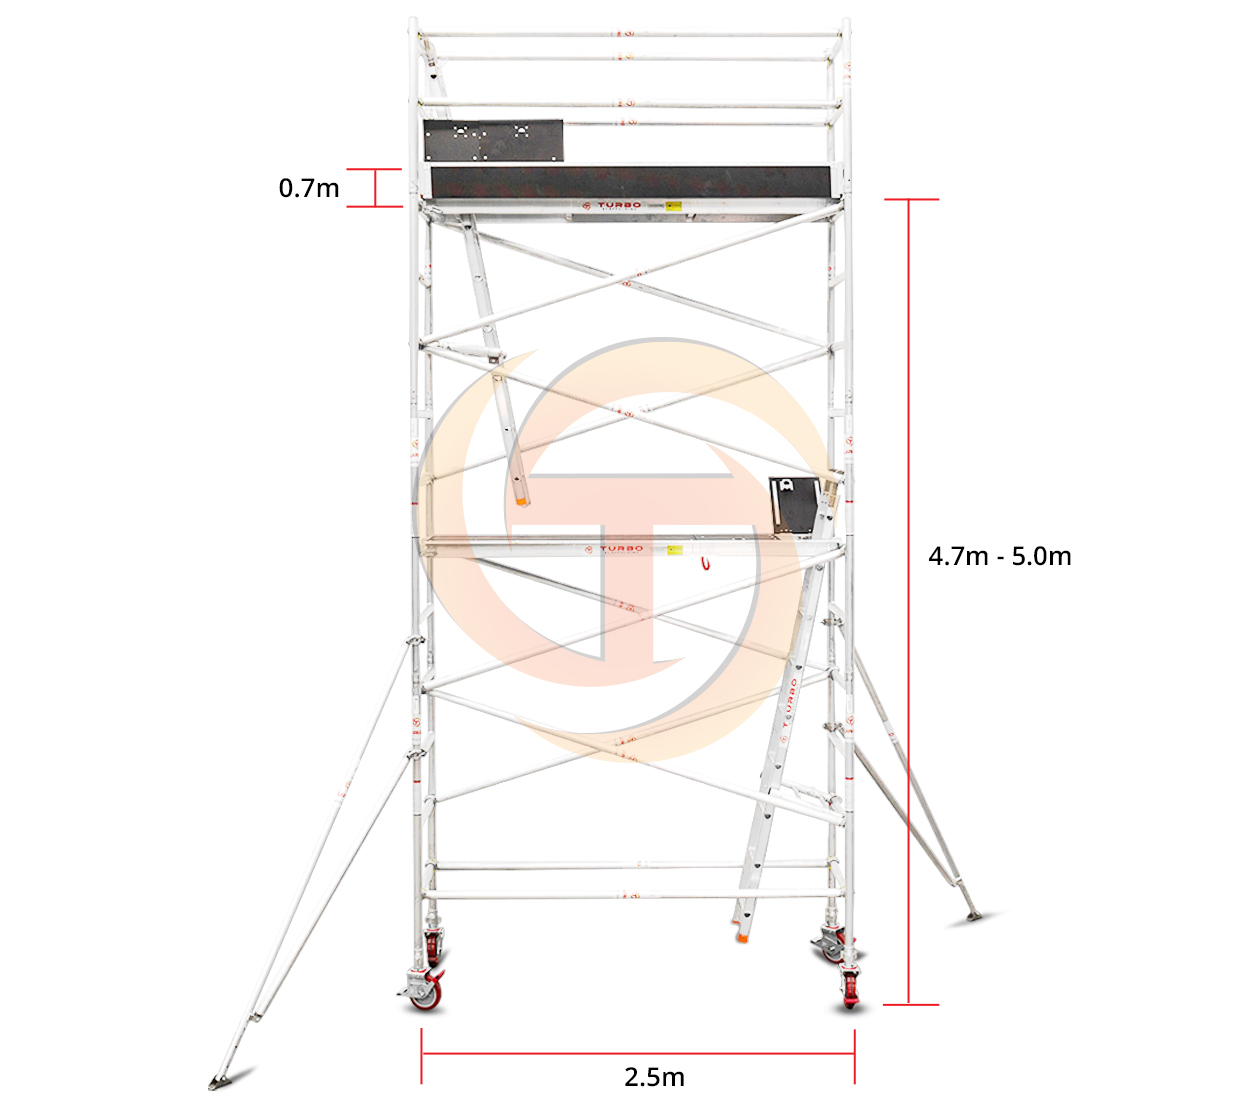 4.7m – 5.0m Narrow Mobile Tower (Standing Height)